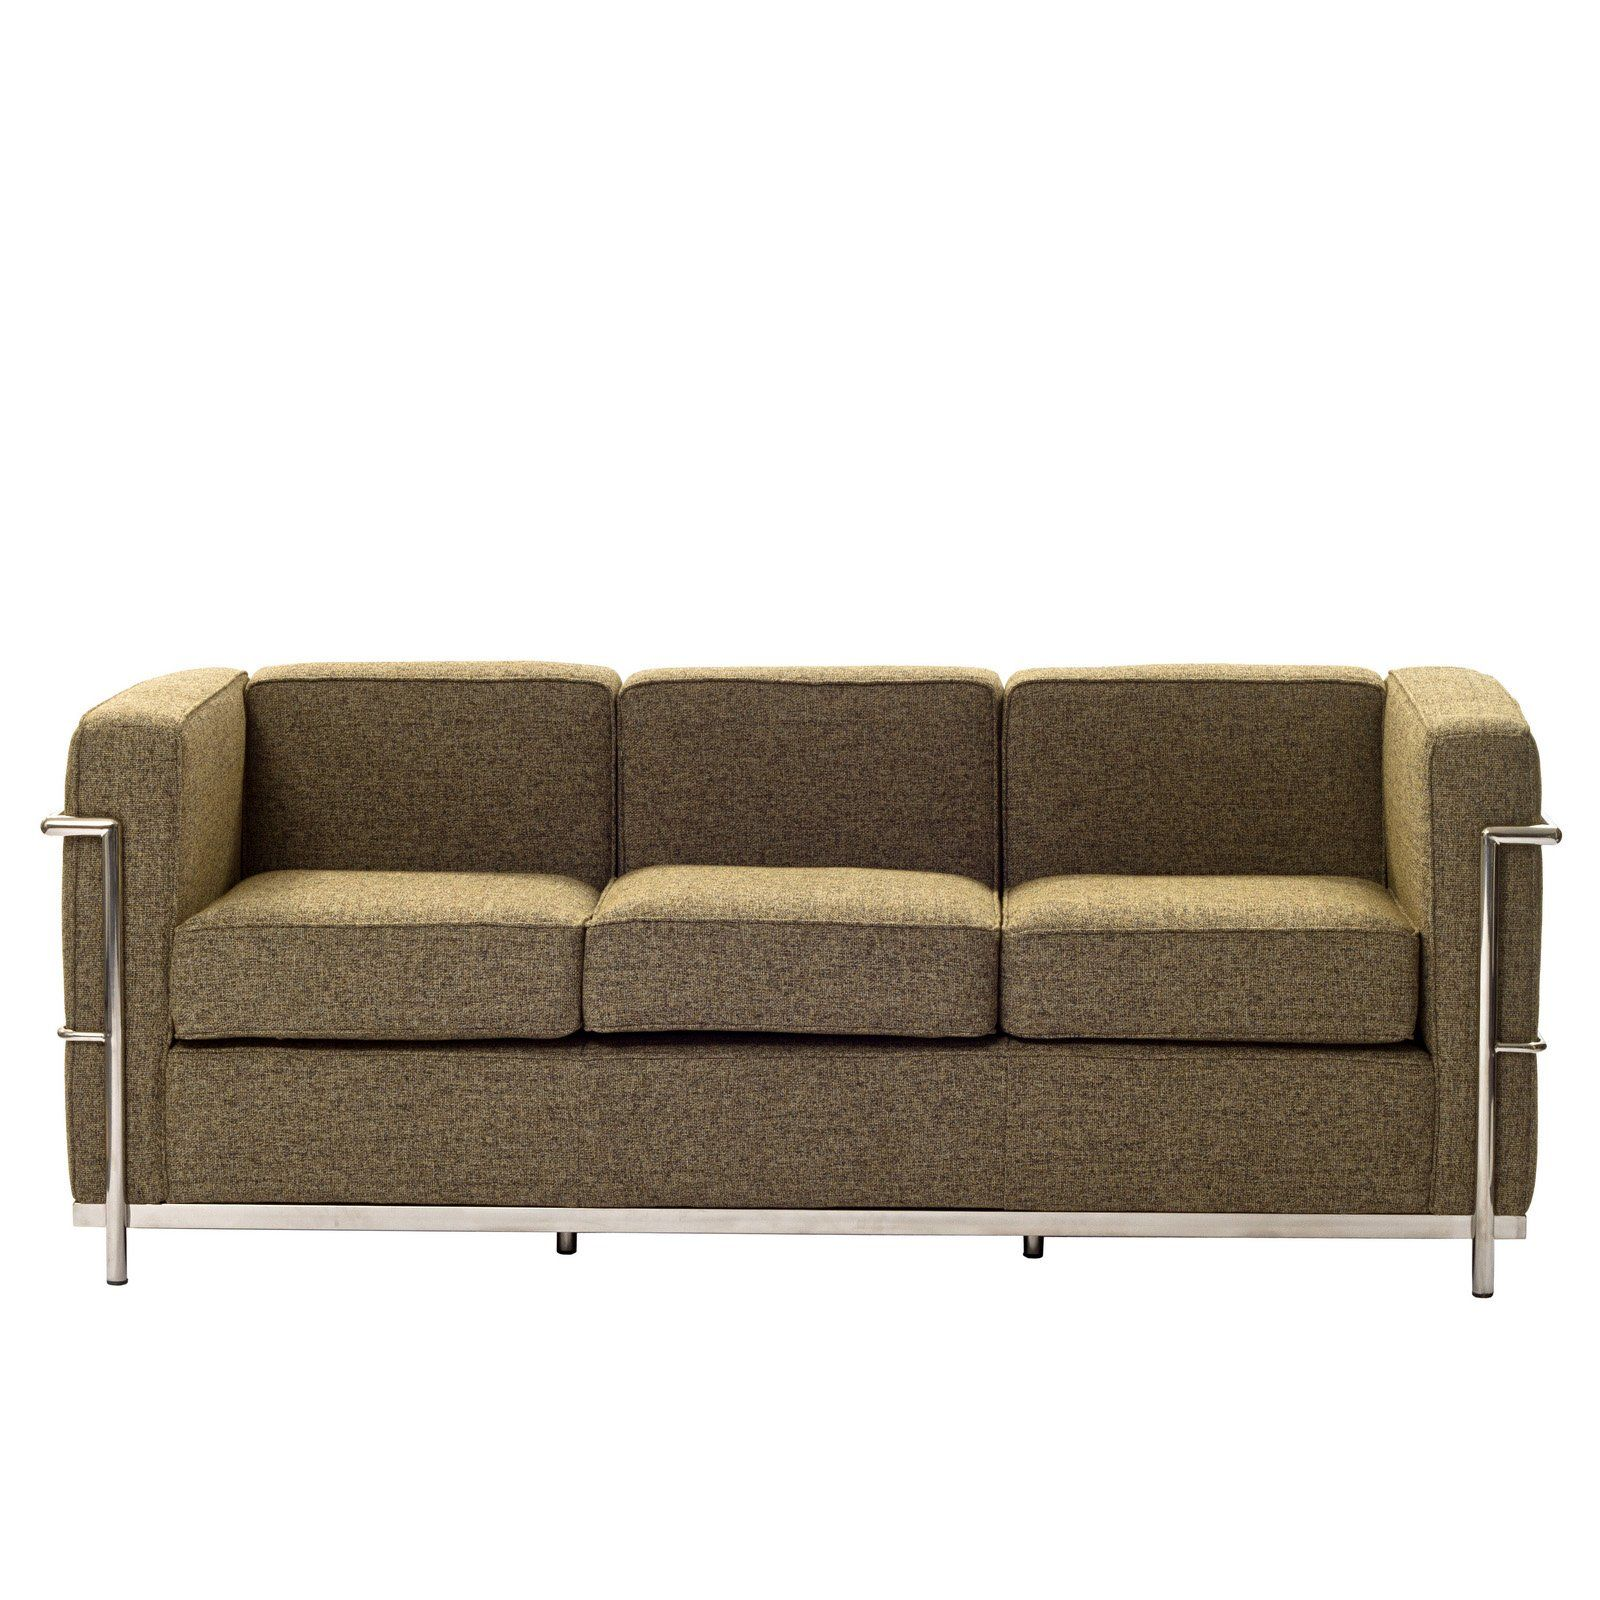 Charles Wool Petite Sofa in Oatmeal Furniture